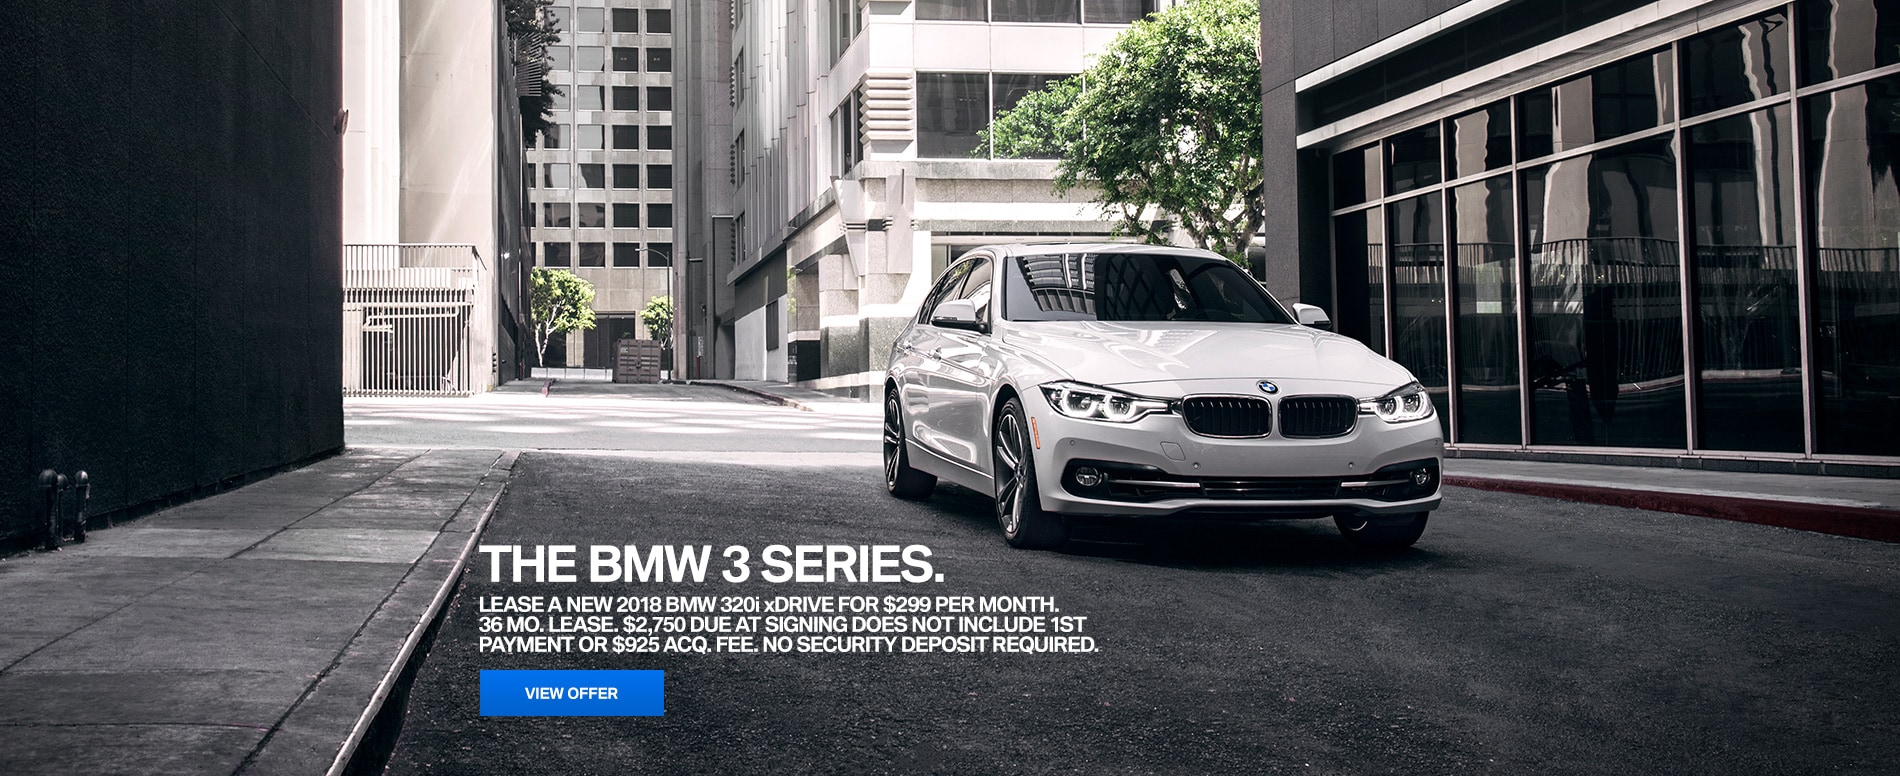 Bmw 3 Series Lease Amp Financing Offers In Wilkes Barre Pa Bmw Of Wyoming Valley